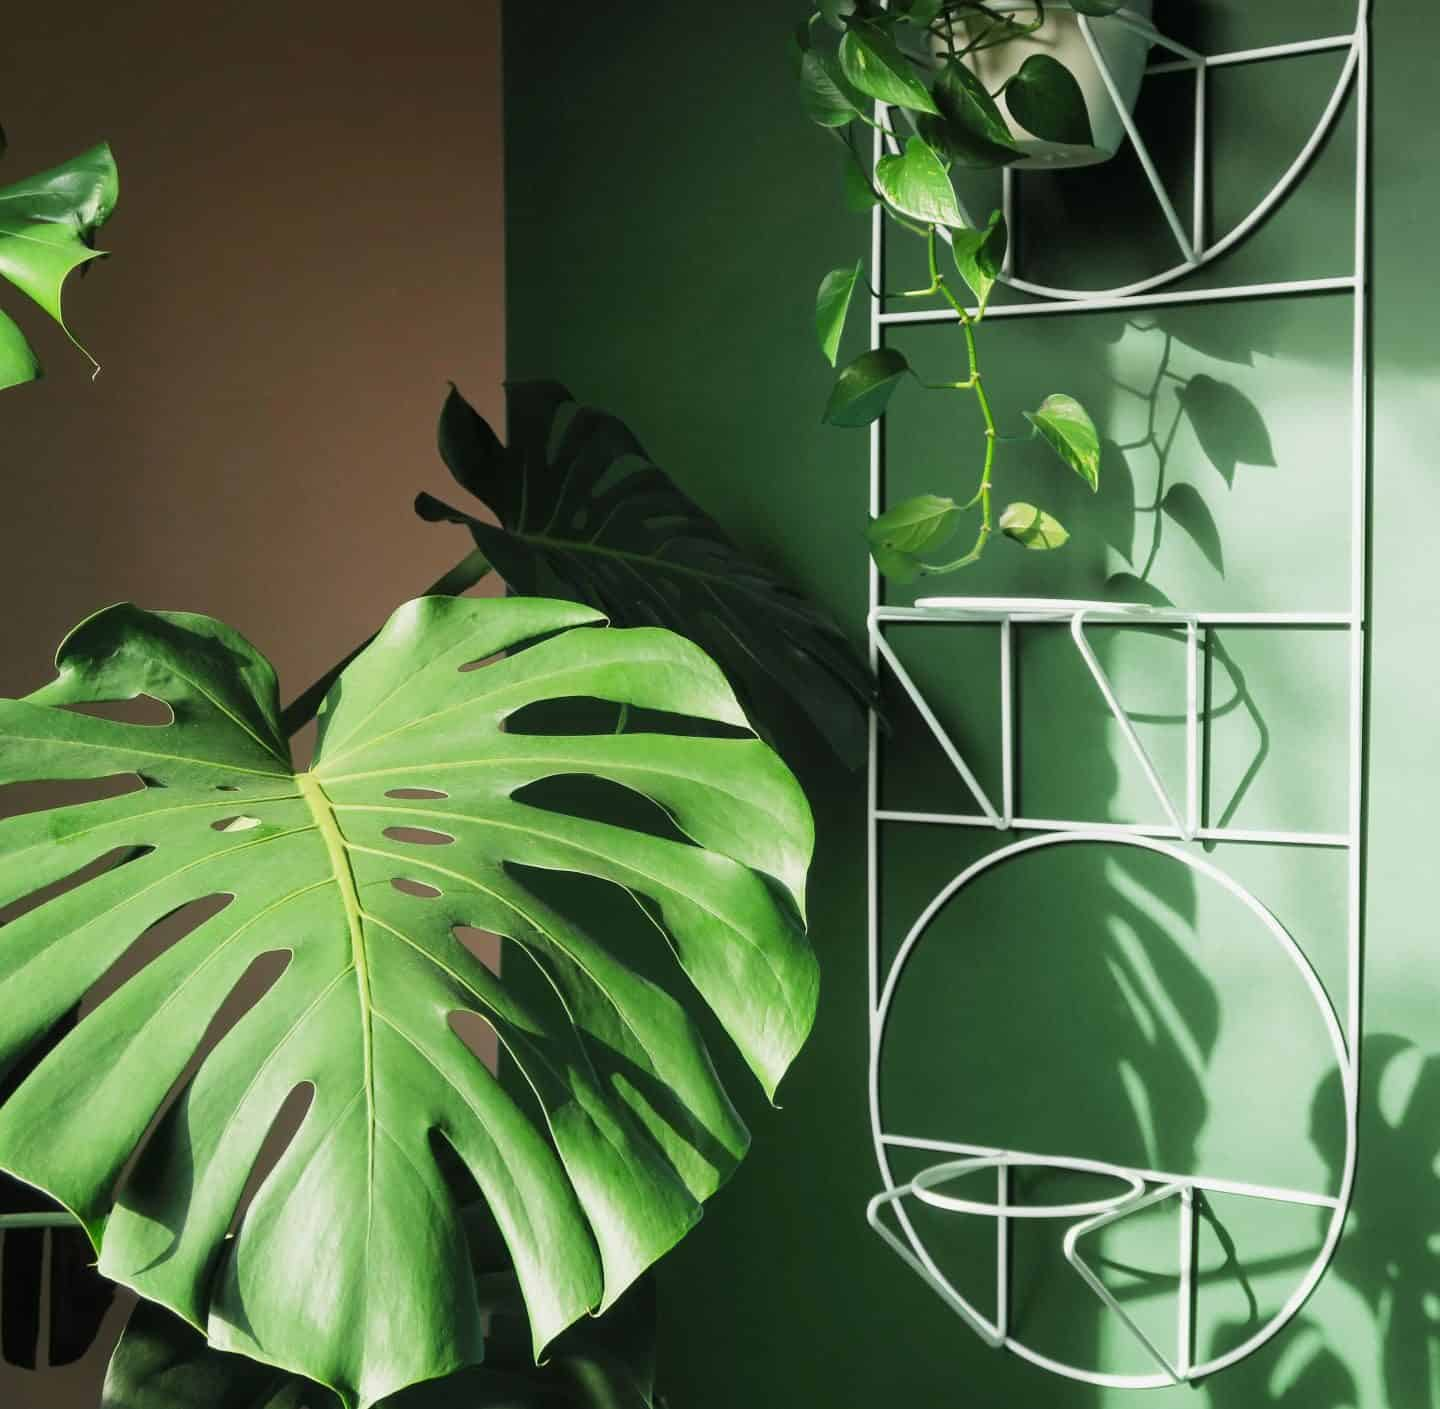 Minimalist design-led plant holder by bujnie mounted on the wall